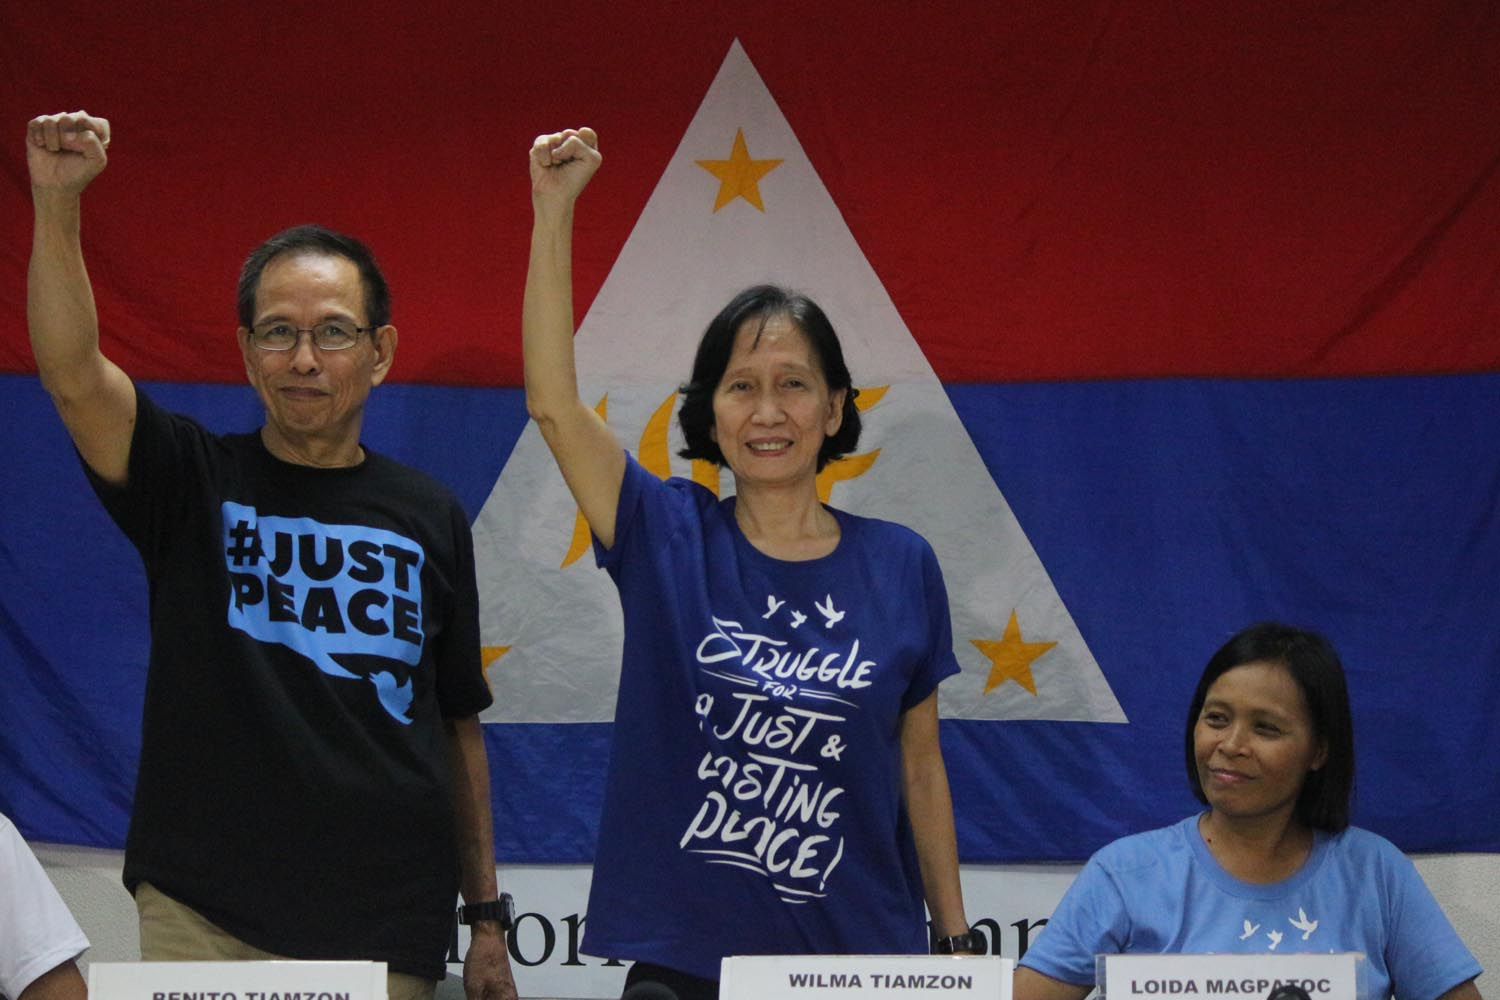 Newly released political prisoners Benito Tiamzon and wife Wilma Tiamzonalong with recently released political prisoner Ma. Loida Magpatoc (seated) during press conference at the Immaculate Conception Multi-purpose Hall in Cubao, Quezon City on August 19. Photo by Joel Liporada/Rappler